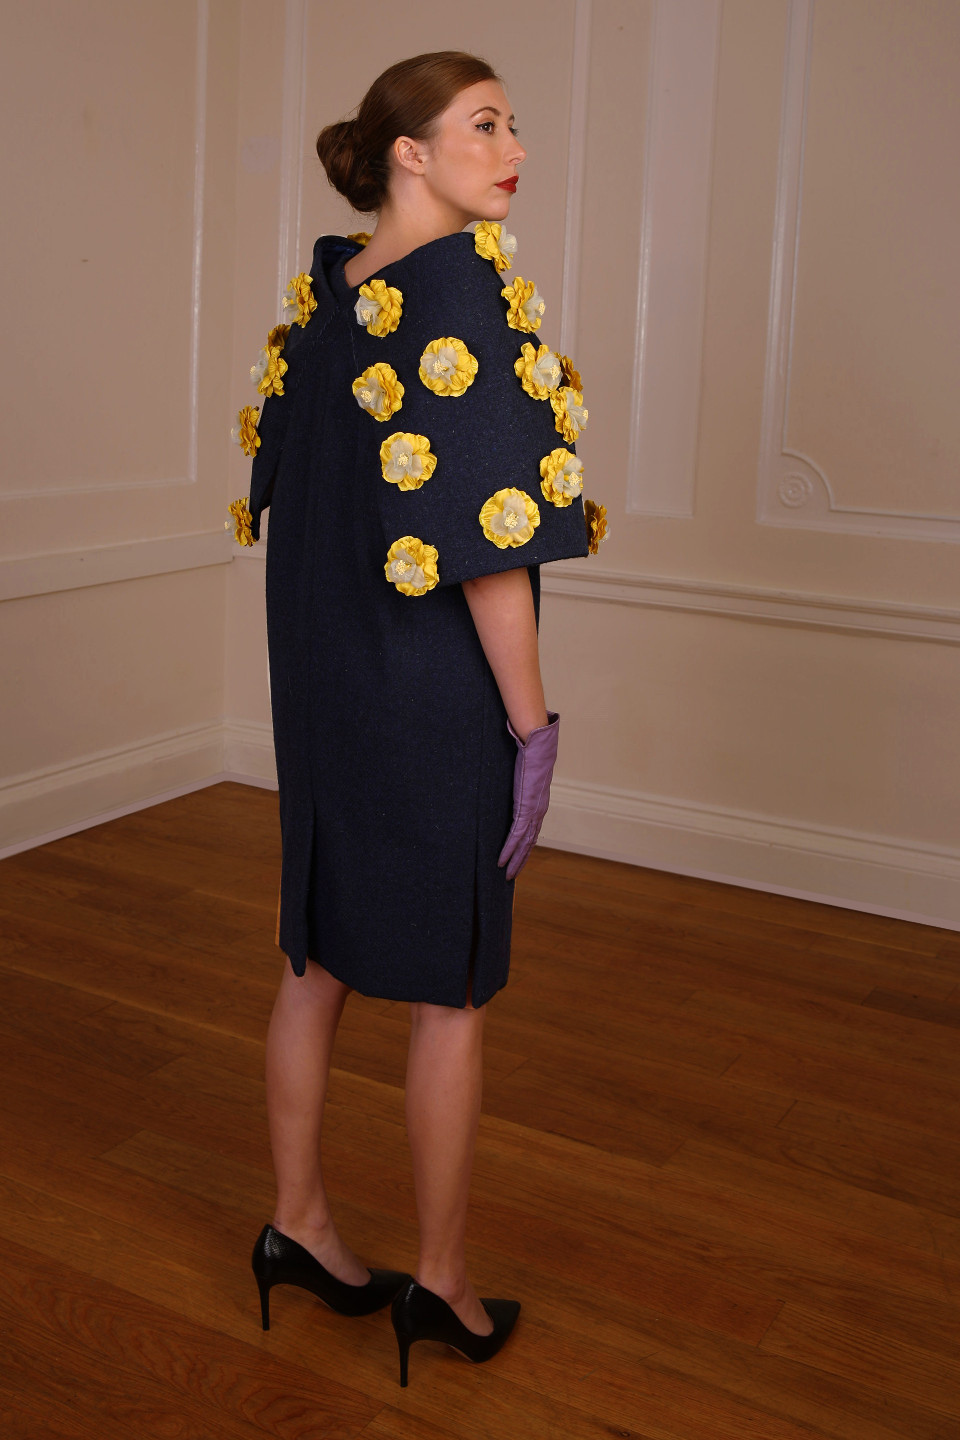 Blue tweed dress coat with yellow applique flowers - chic outfit couture design angelo fair designer london